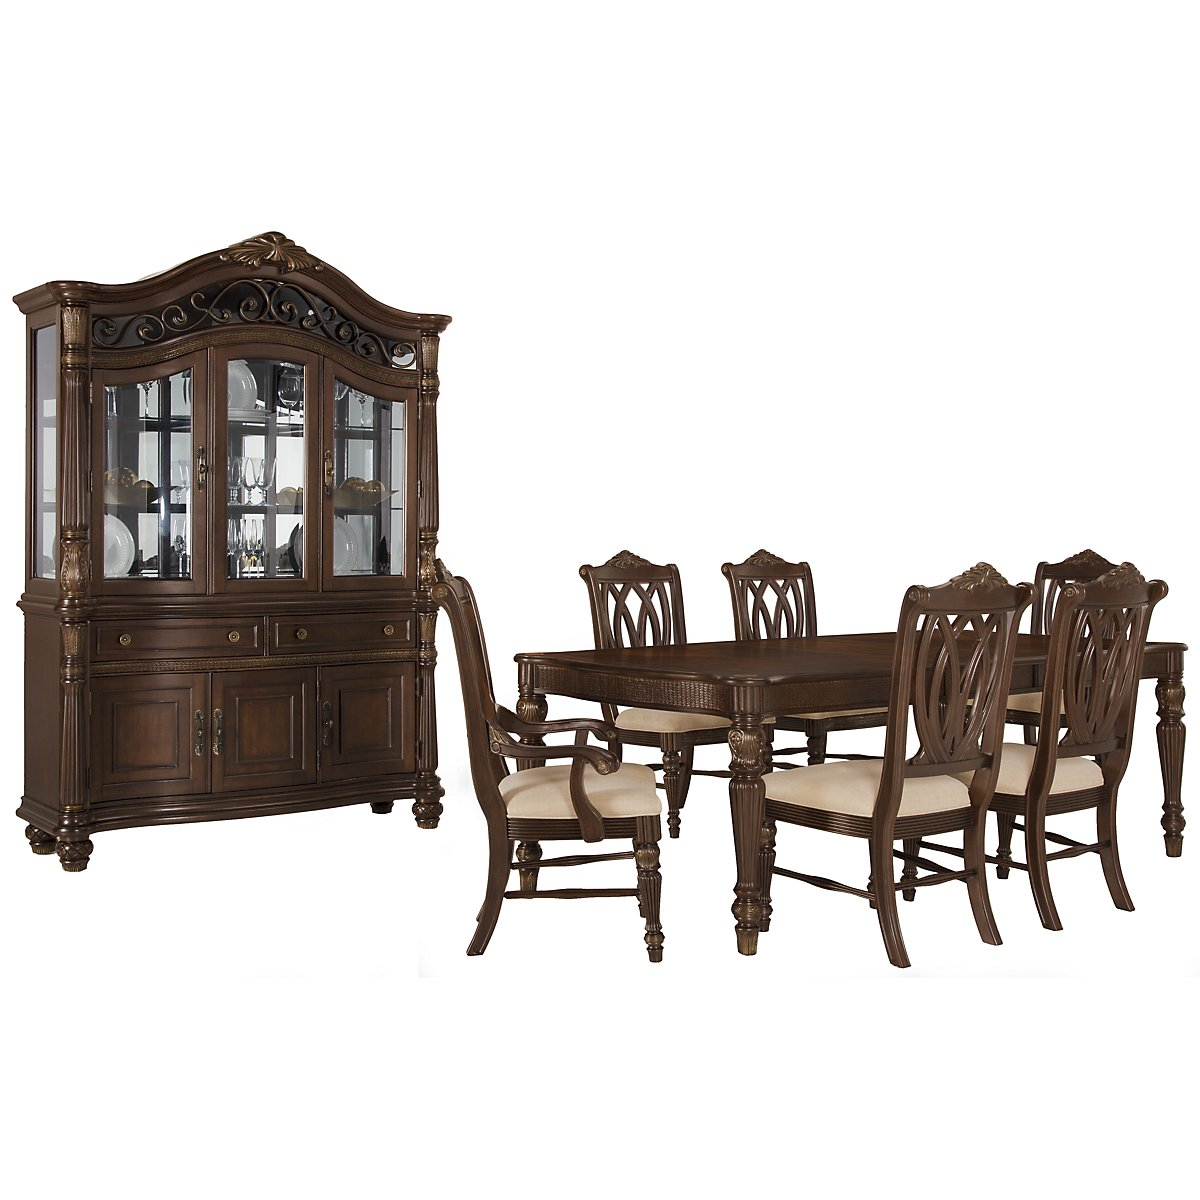 Tradewinds Dark Tone Rectangular Dining Room